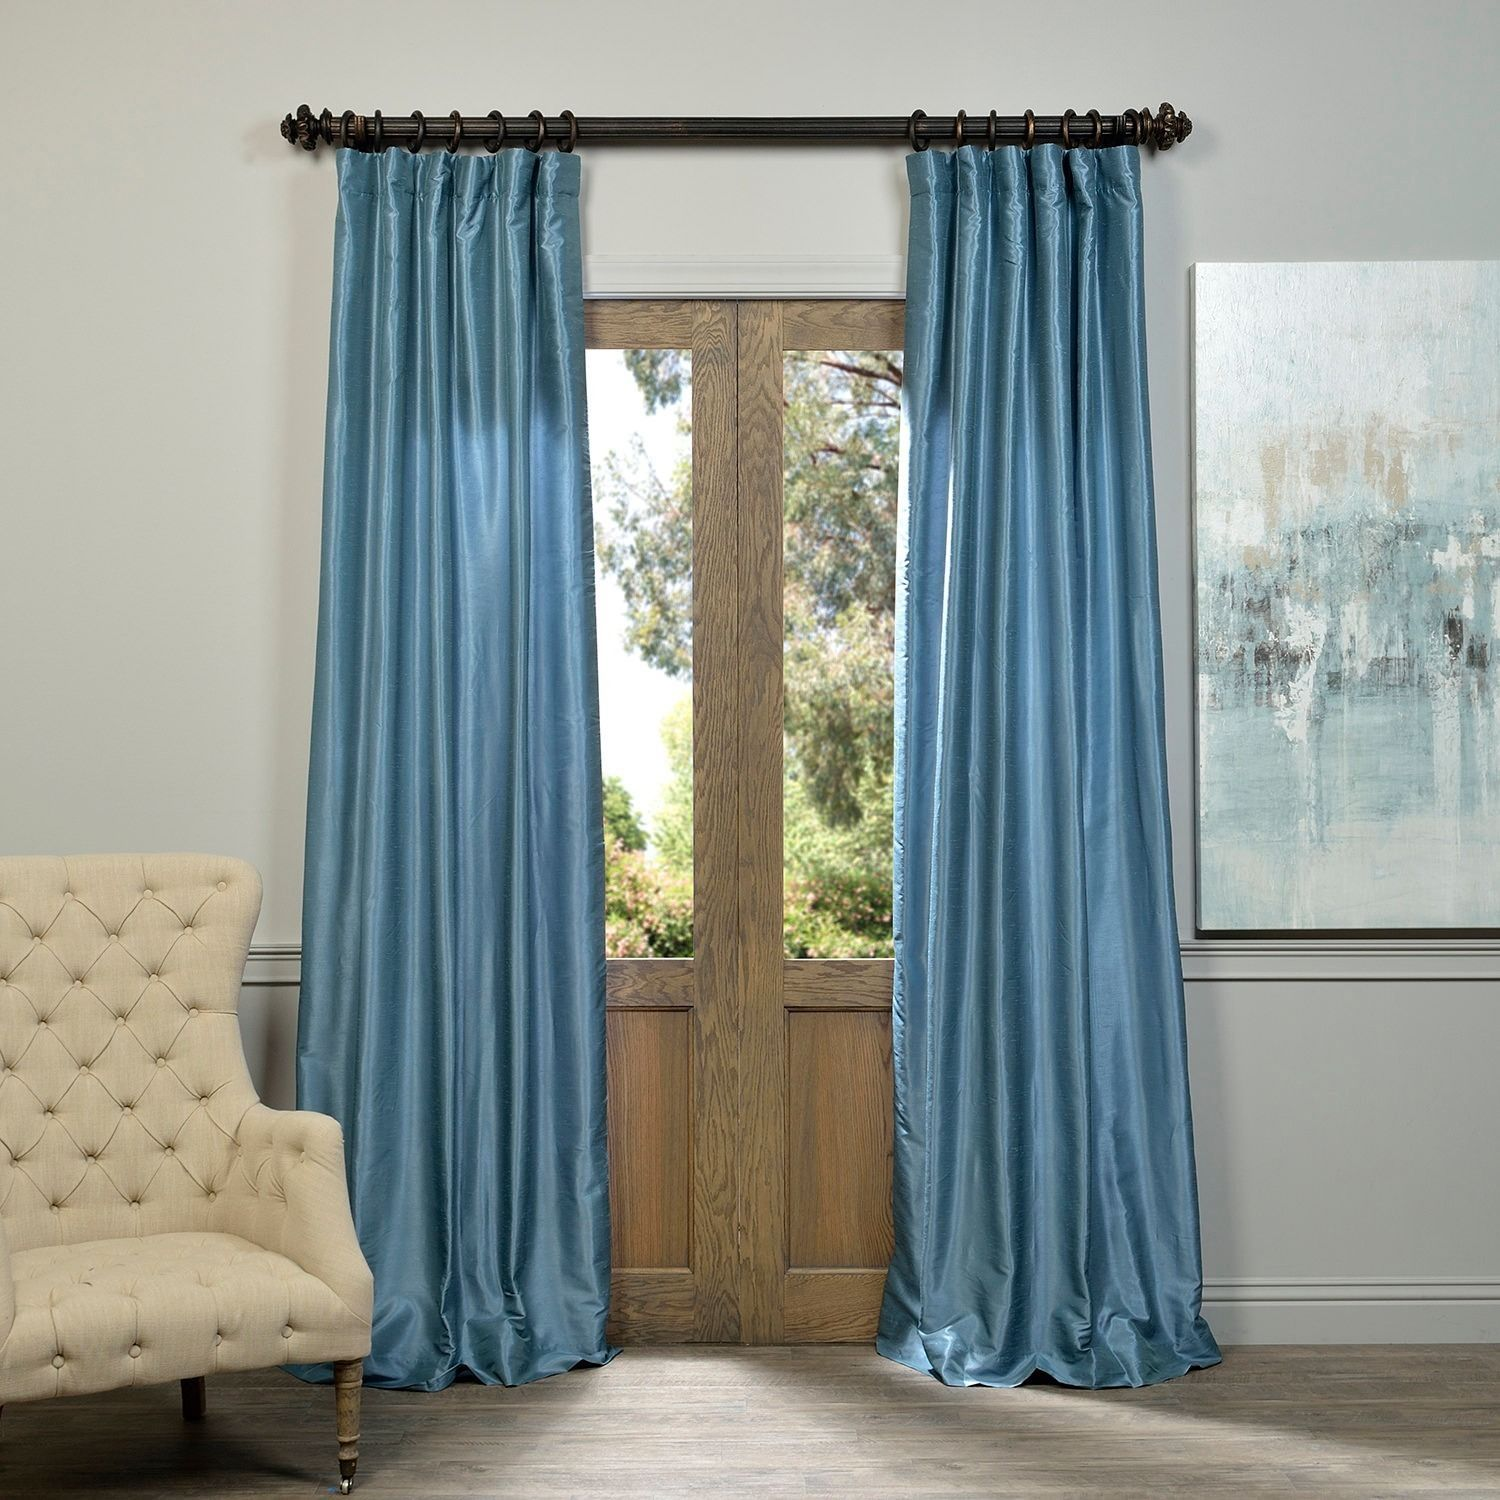 Add a little texture and dimension to your window treatments with